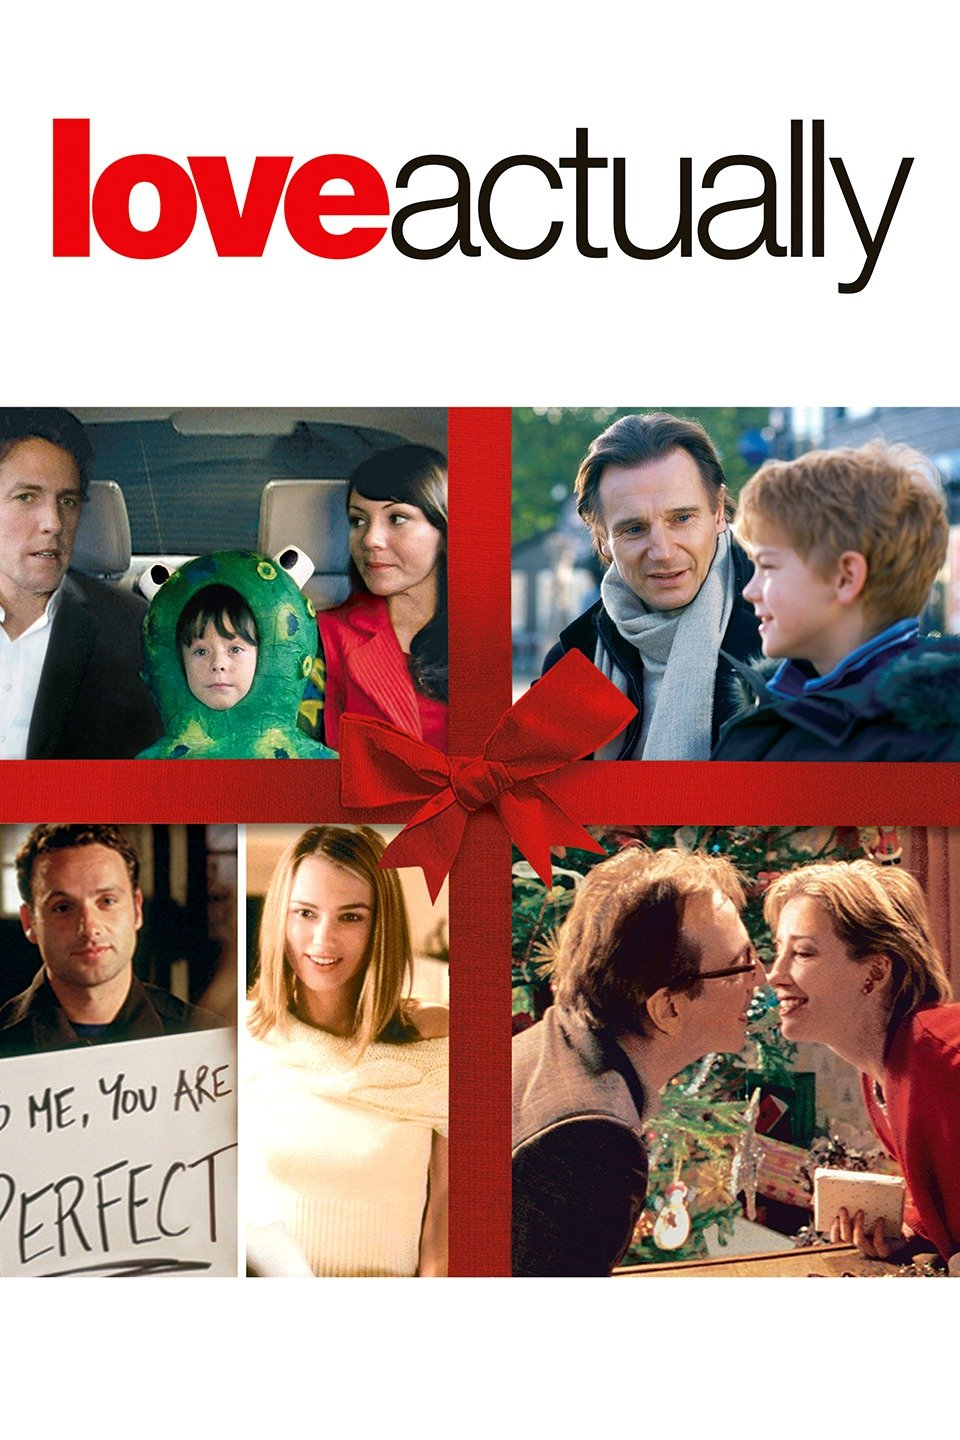 Love Actually - Ok so this is my pick. And while all story lines may not be totally family friendly, for the teens and adults this one will bring laughs and maybe a tear or two.